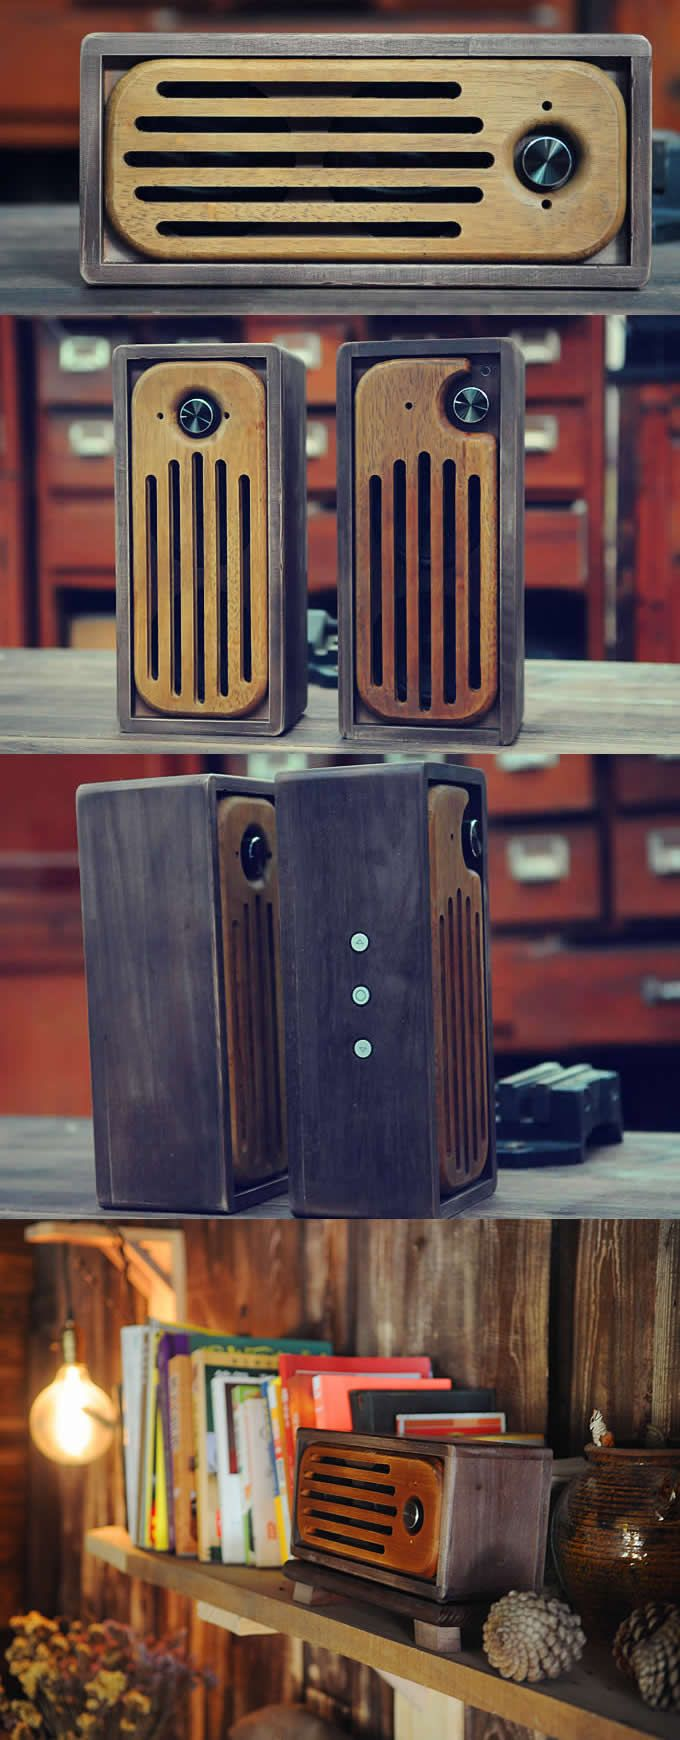 Handmade Wooden Bluetooth Speaker  for iPhone SmartPhone iPad iPod and MP3 Player